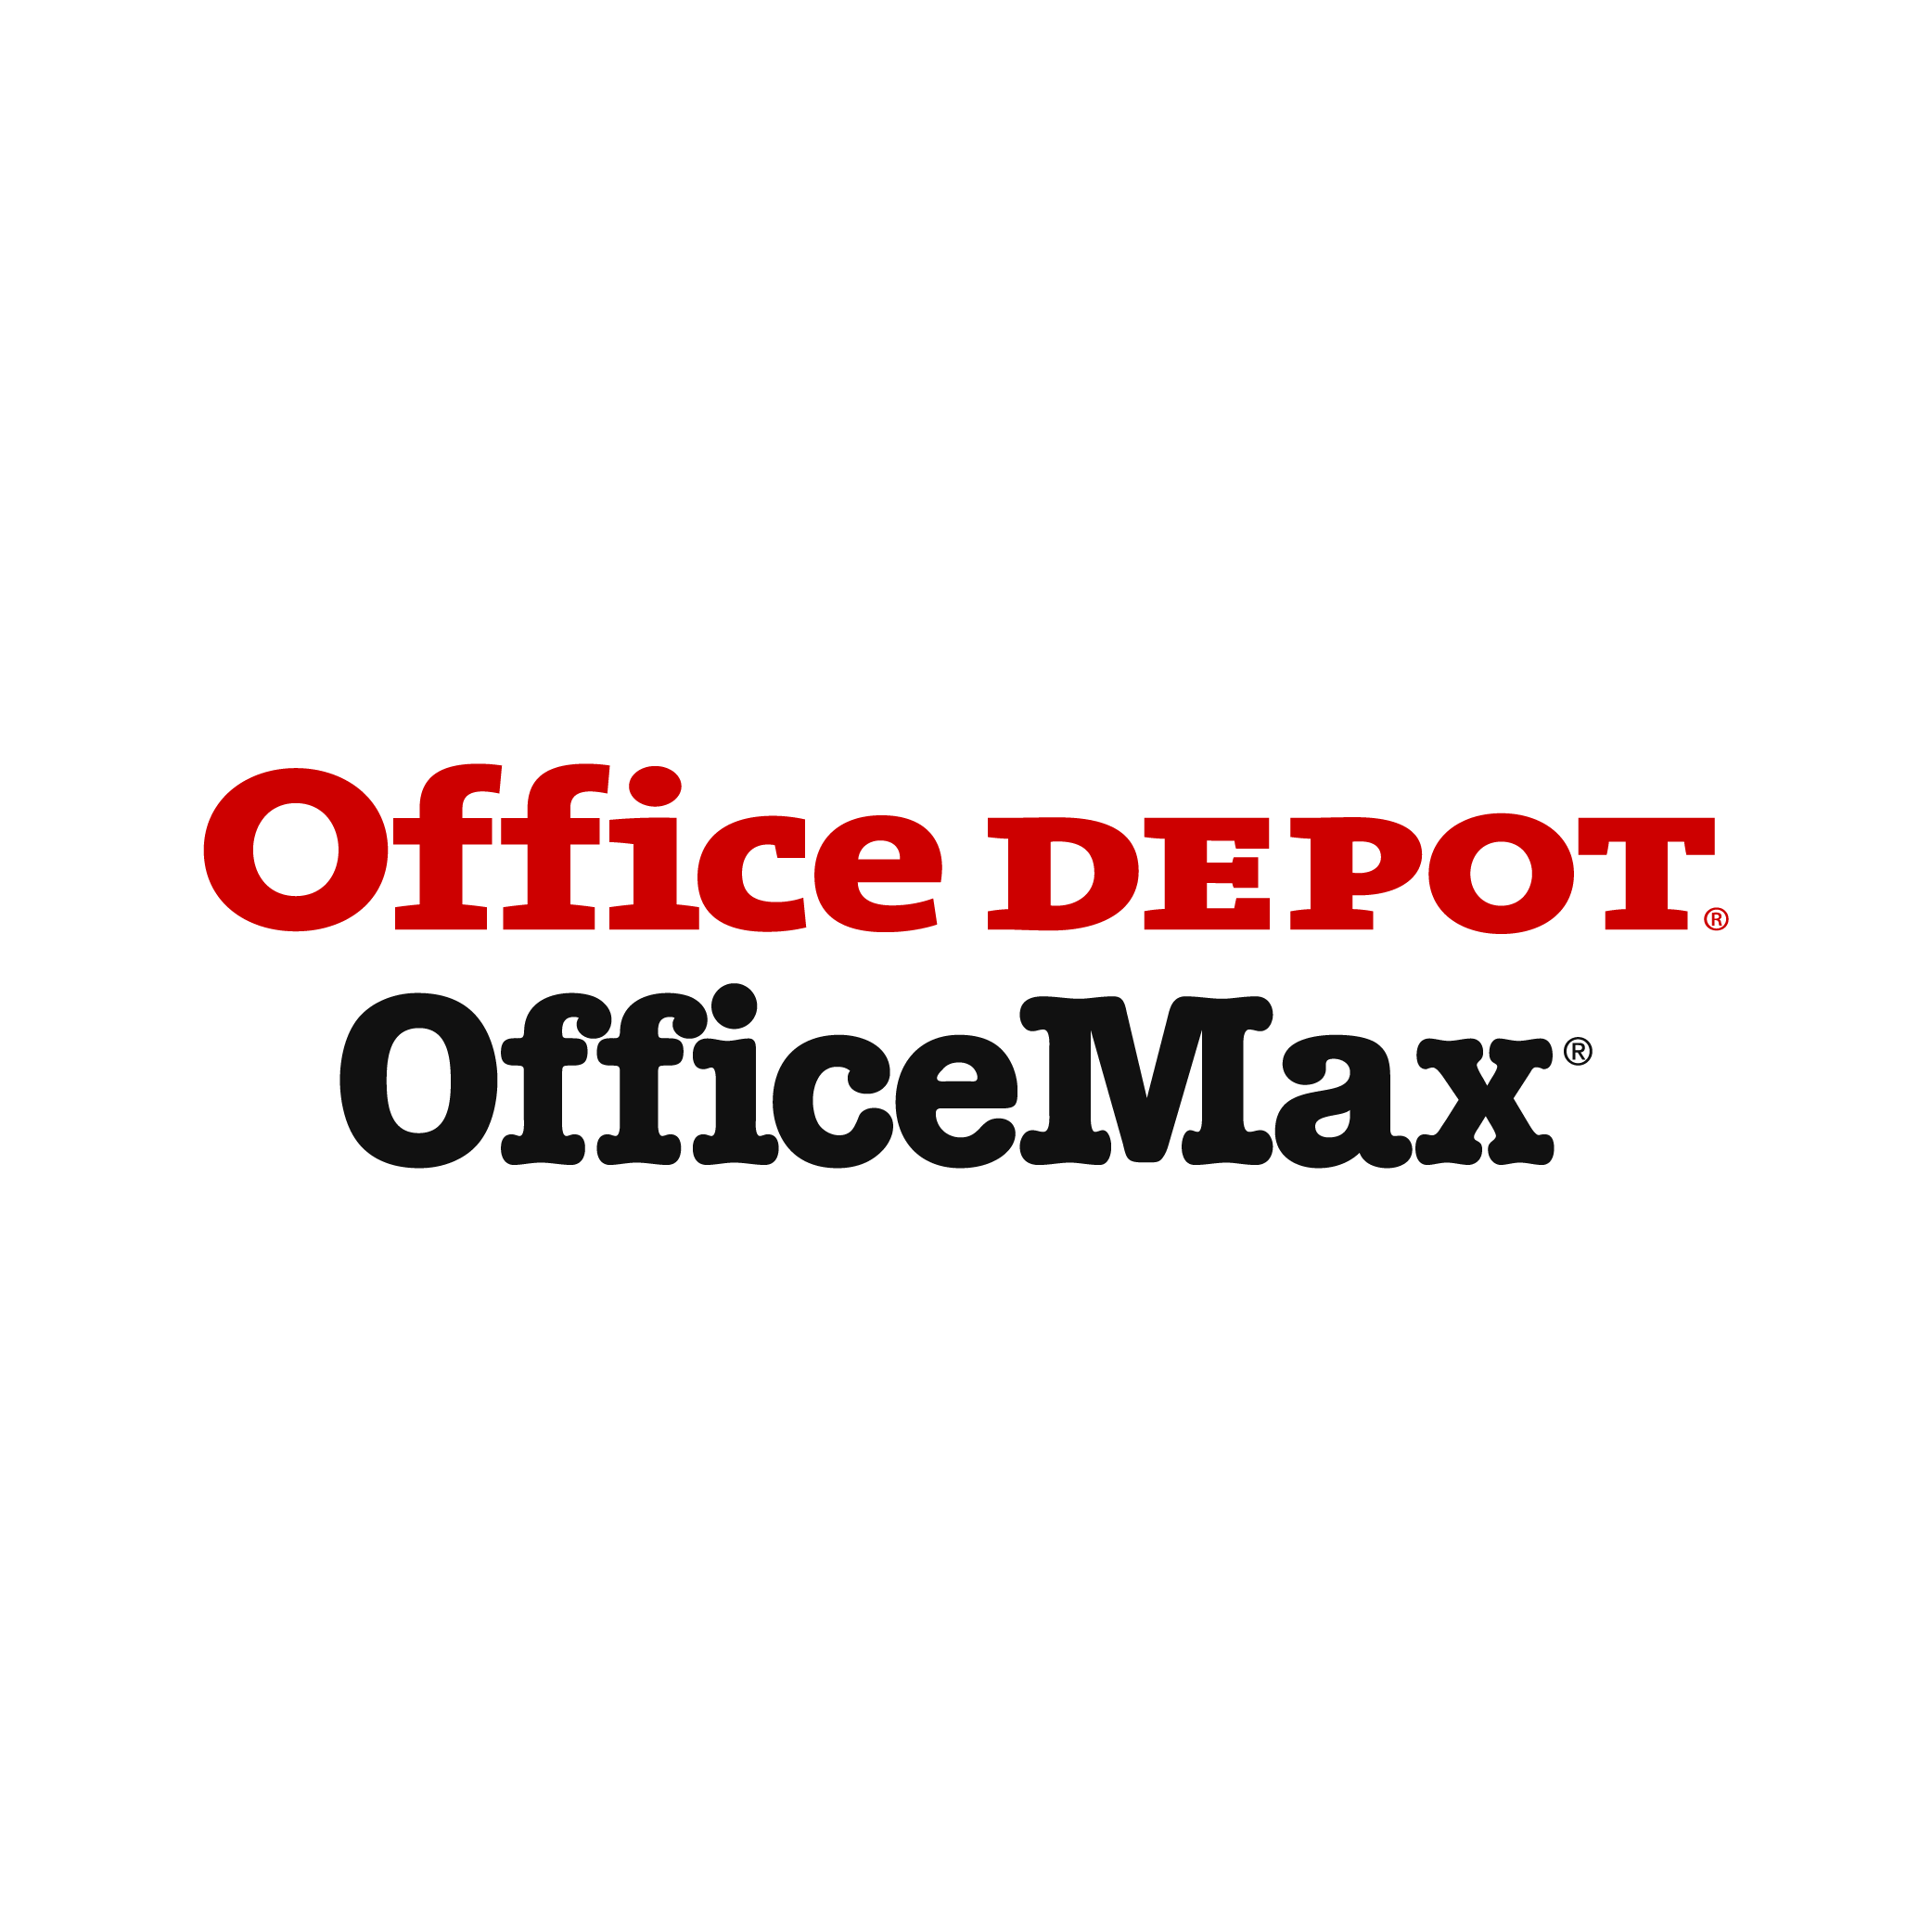 OfficeMax - Las Vegas, NV - Office Supply Stores